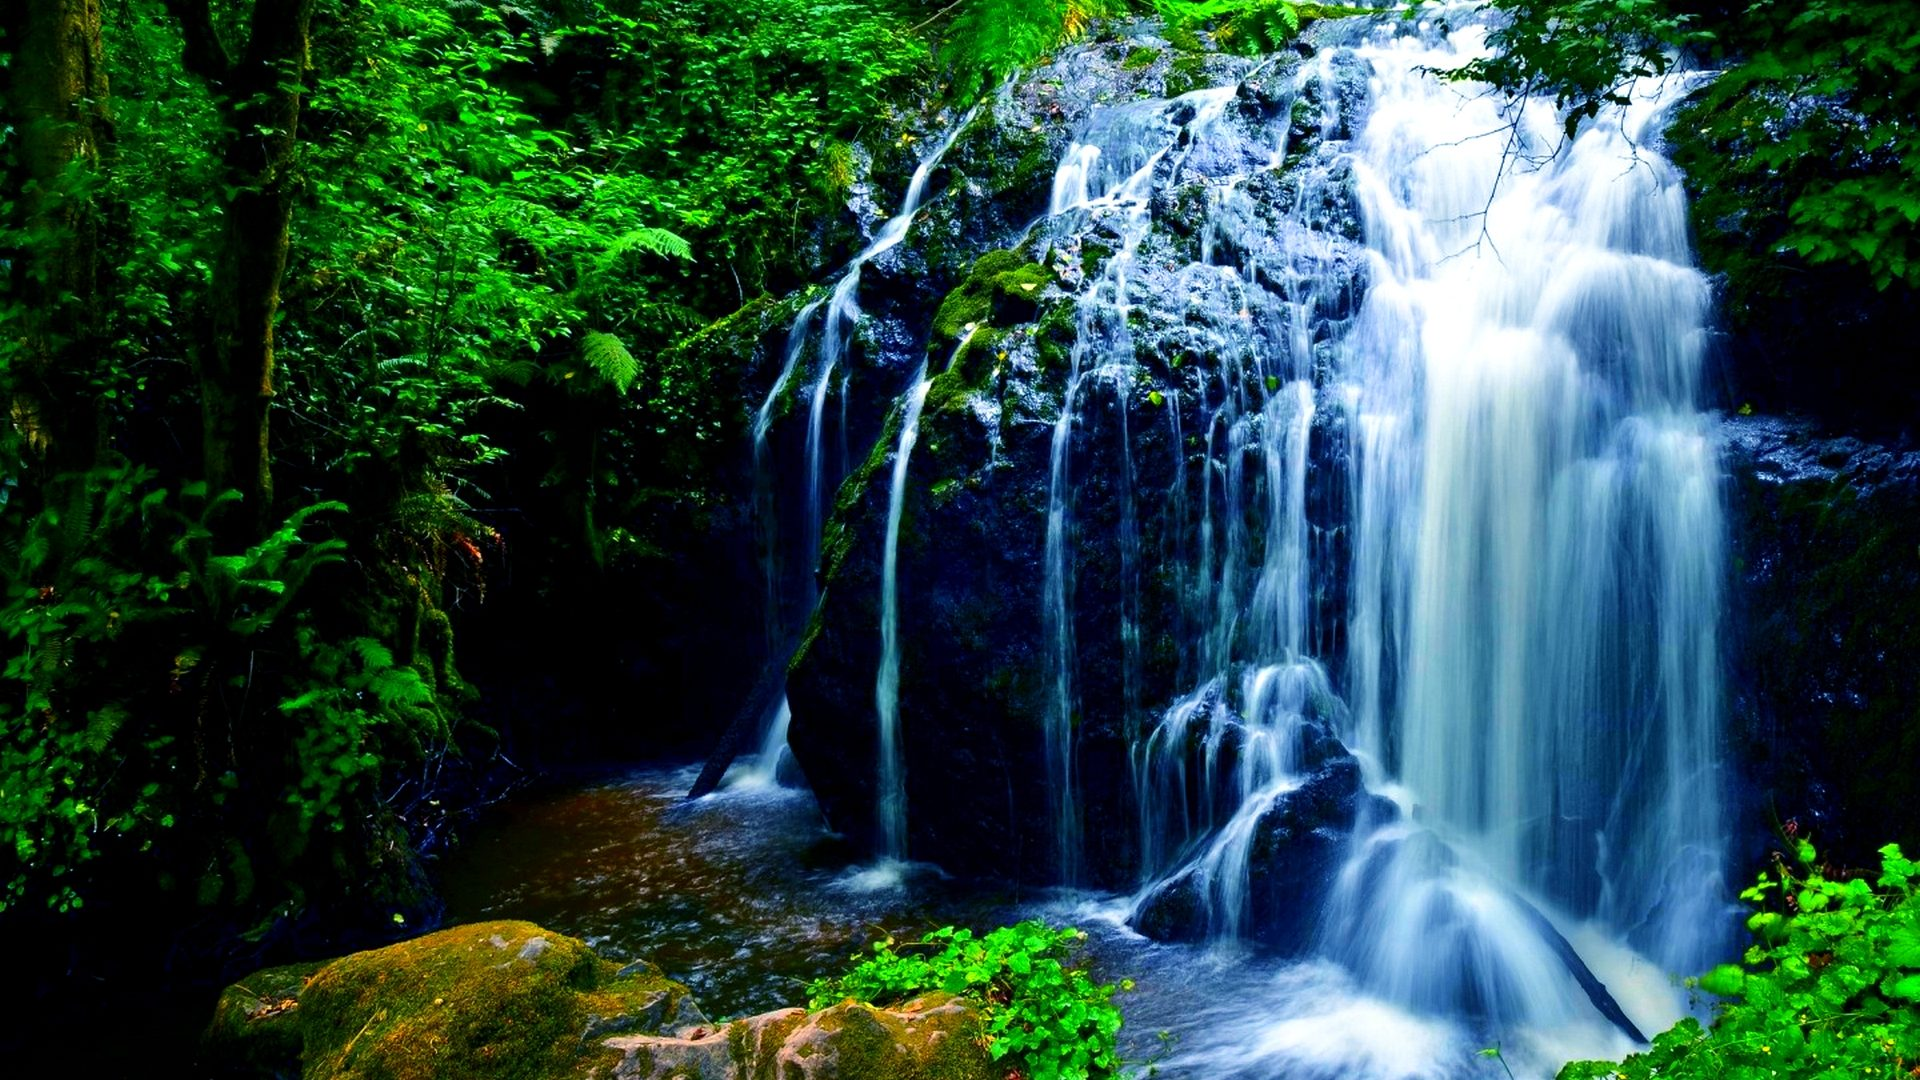 Moving Fall Wallpapers For Windows 10 Nature Beautiful Waterfall Green Noise Rock Fern Green